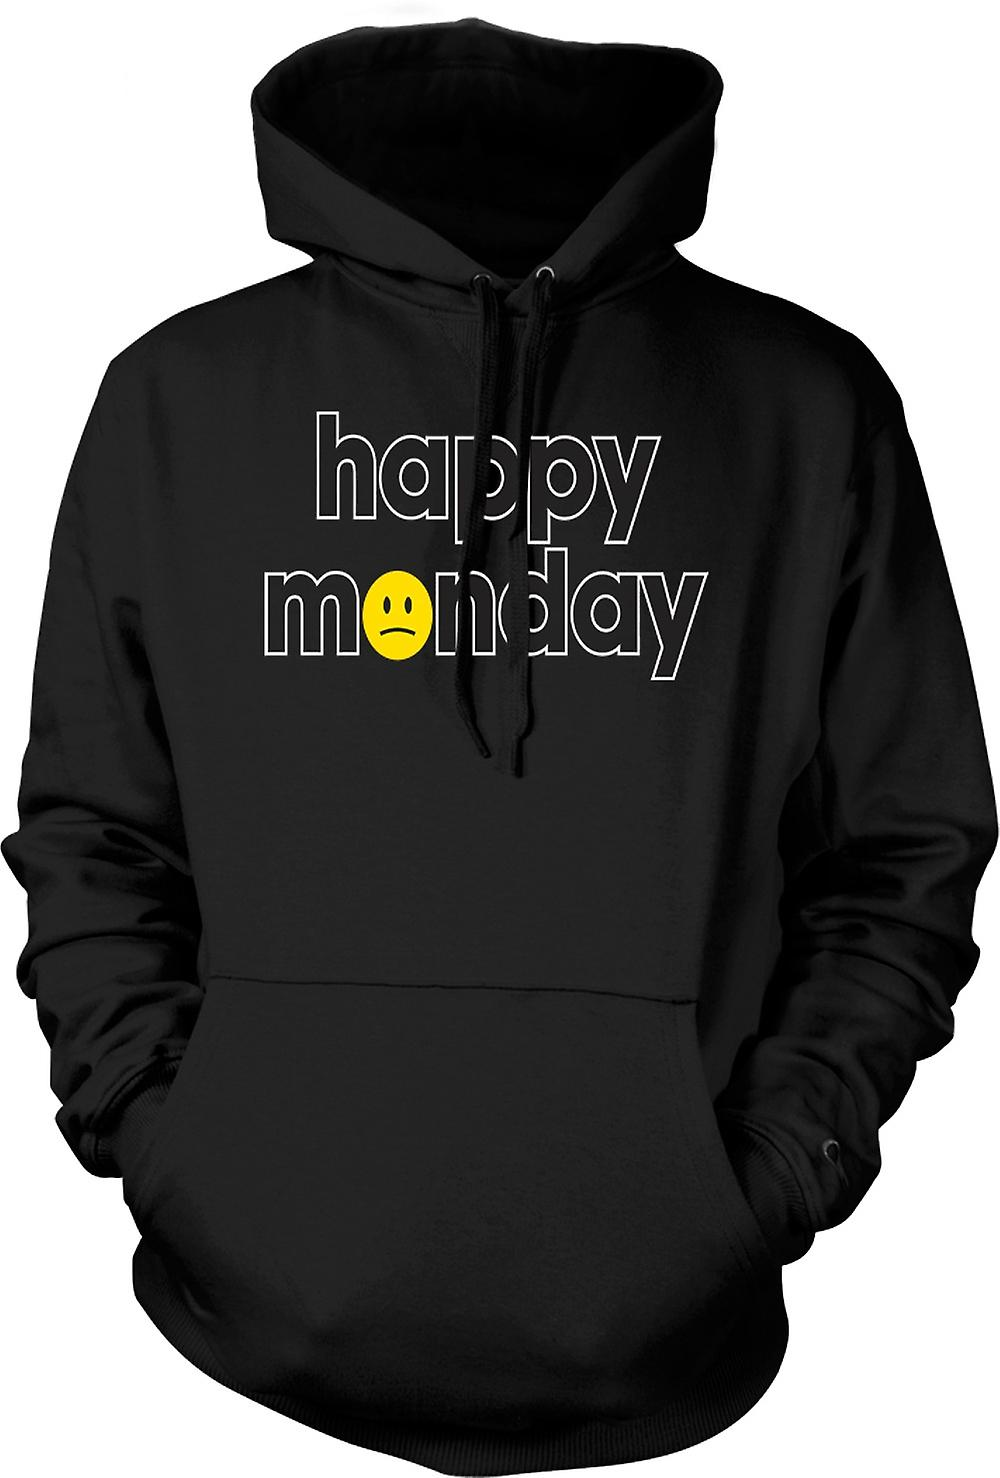 Mens Hoodie - Happy Monday - Smiley Face - Quote